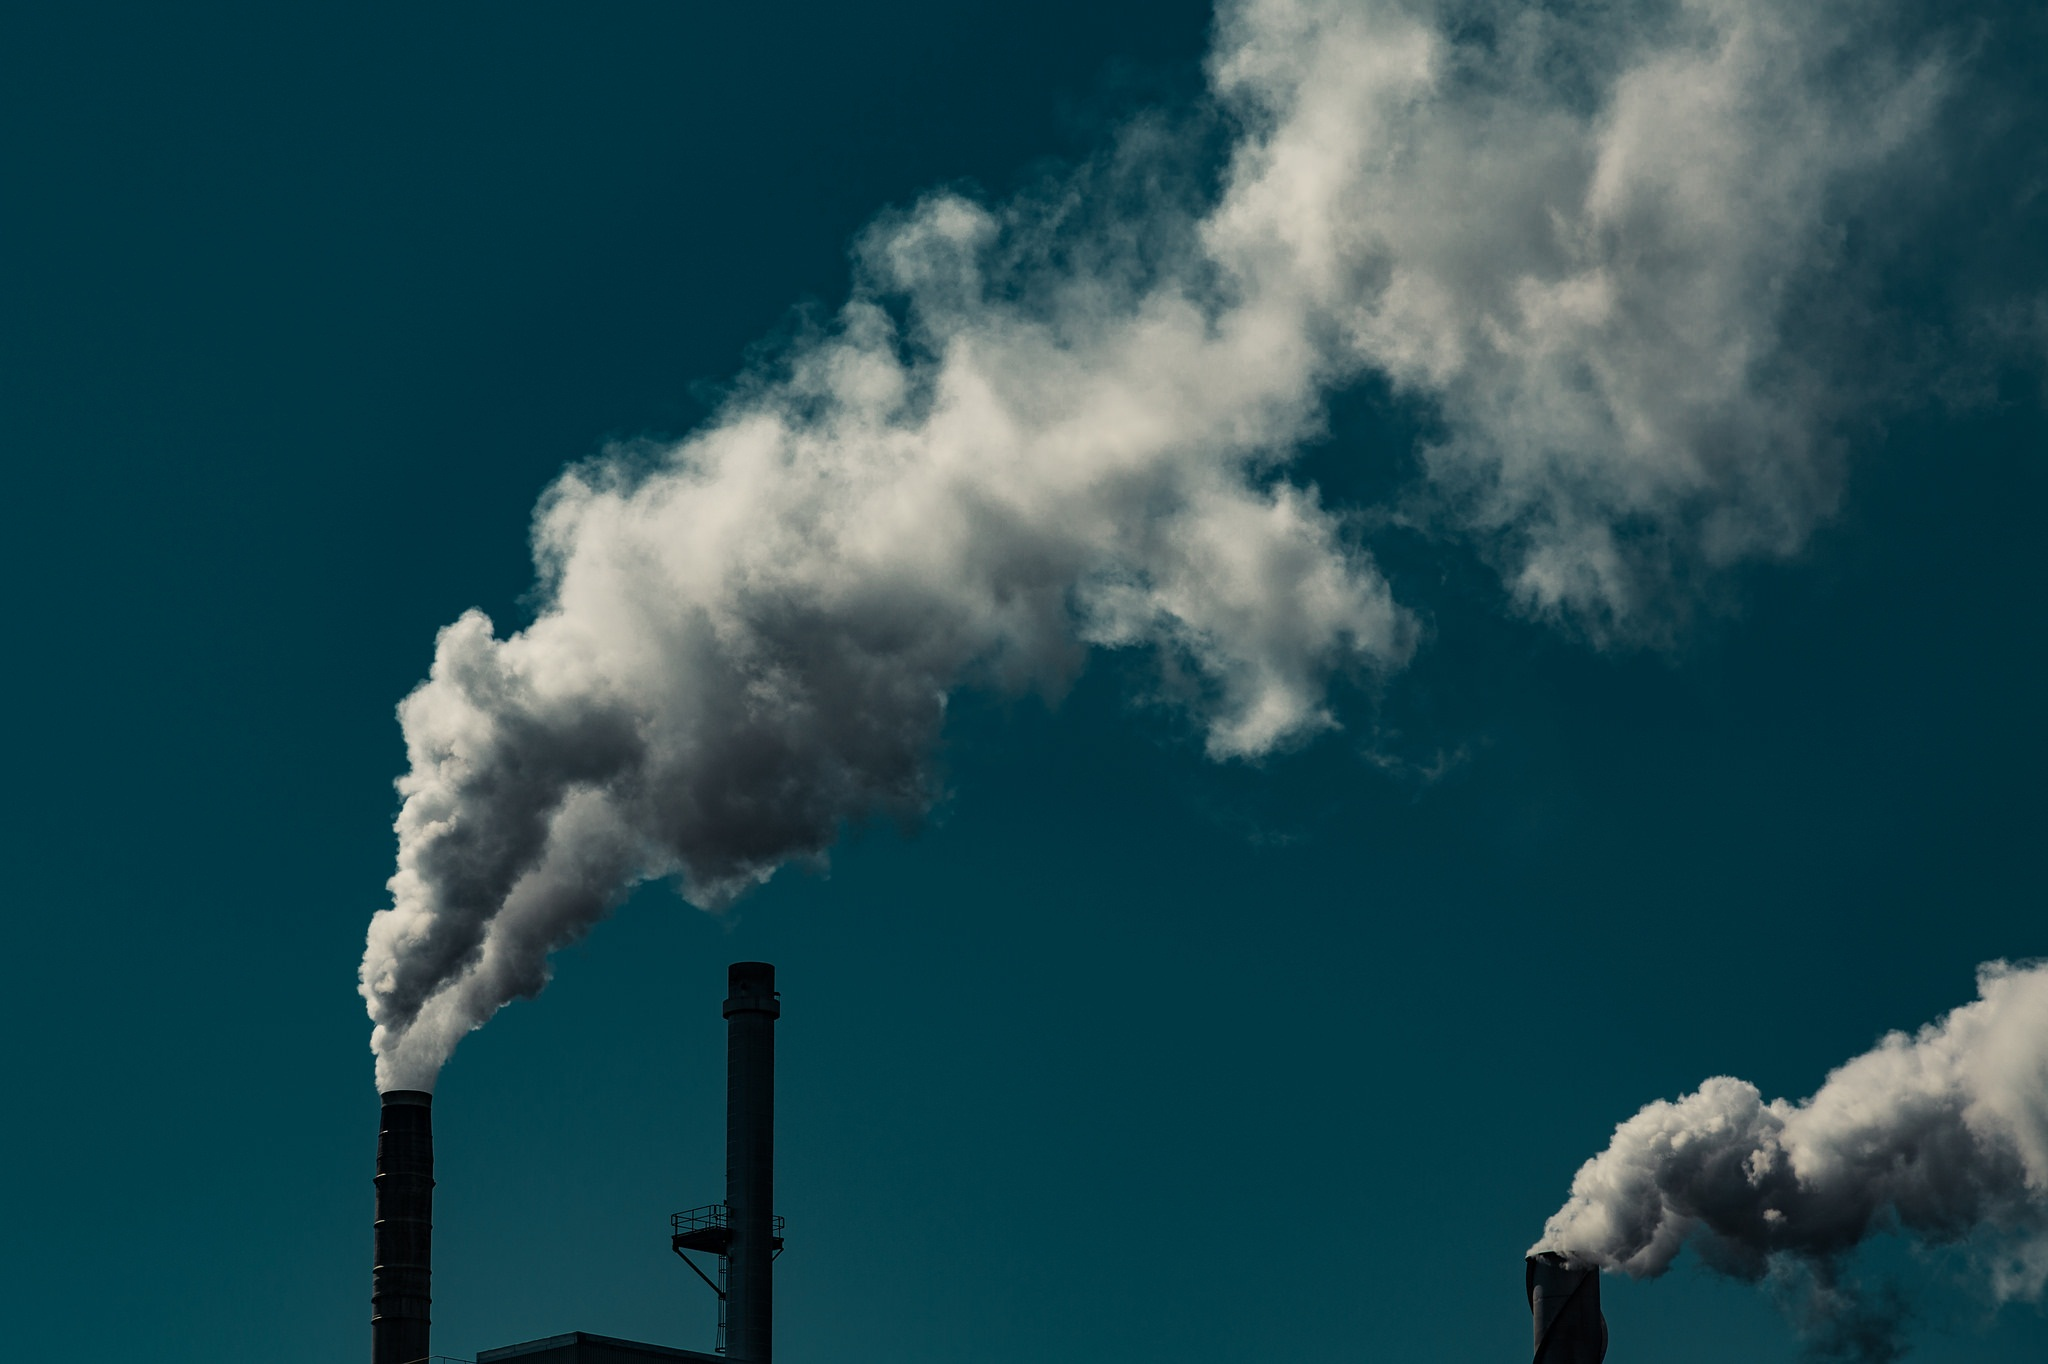 The US is open to setting up more fossil fuel power plants within its national boundaries and encouraging industry to set up inefficient gas-based plants Credit: Tony Webster/Flickr